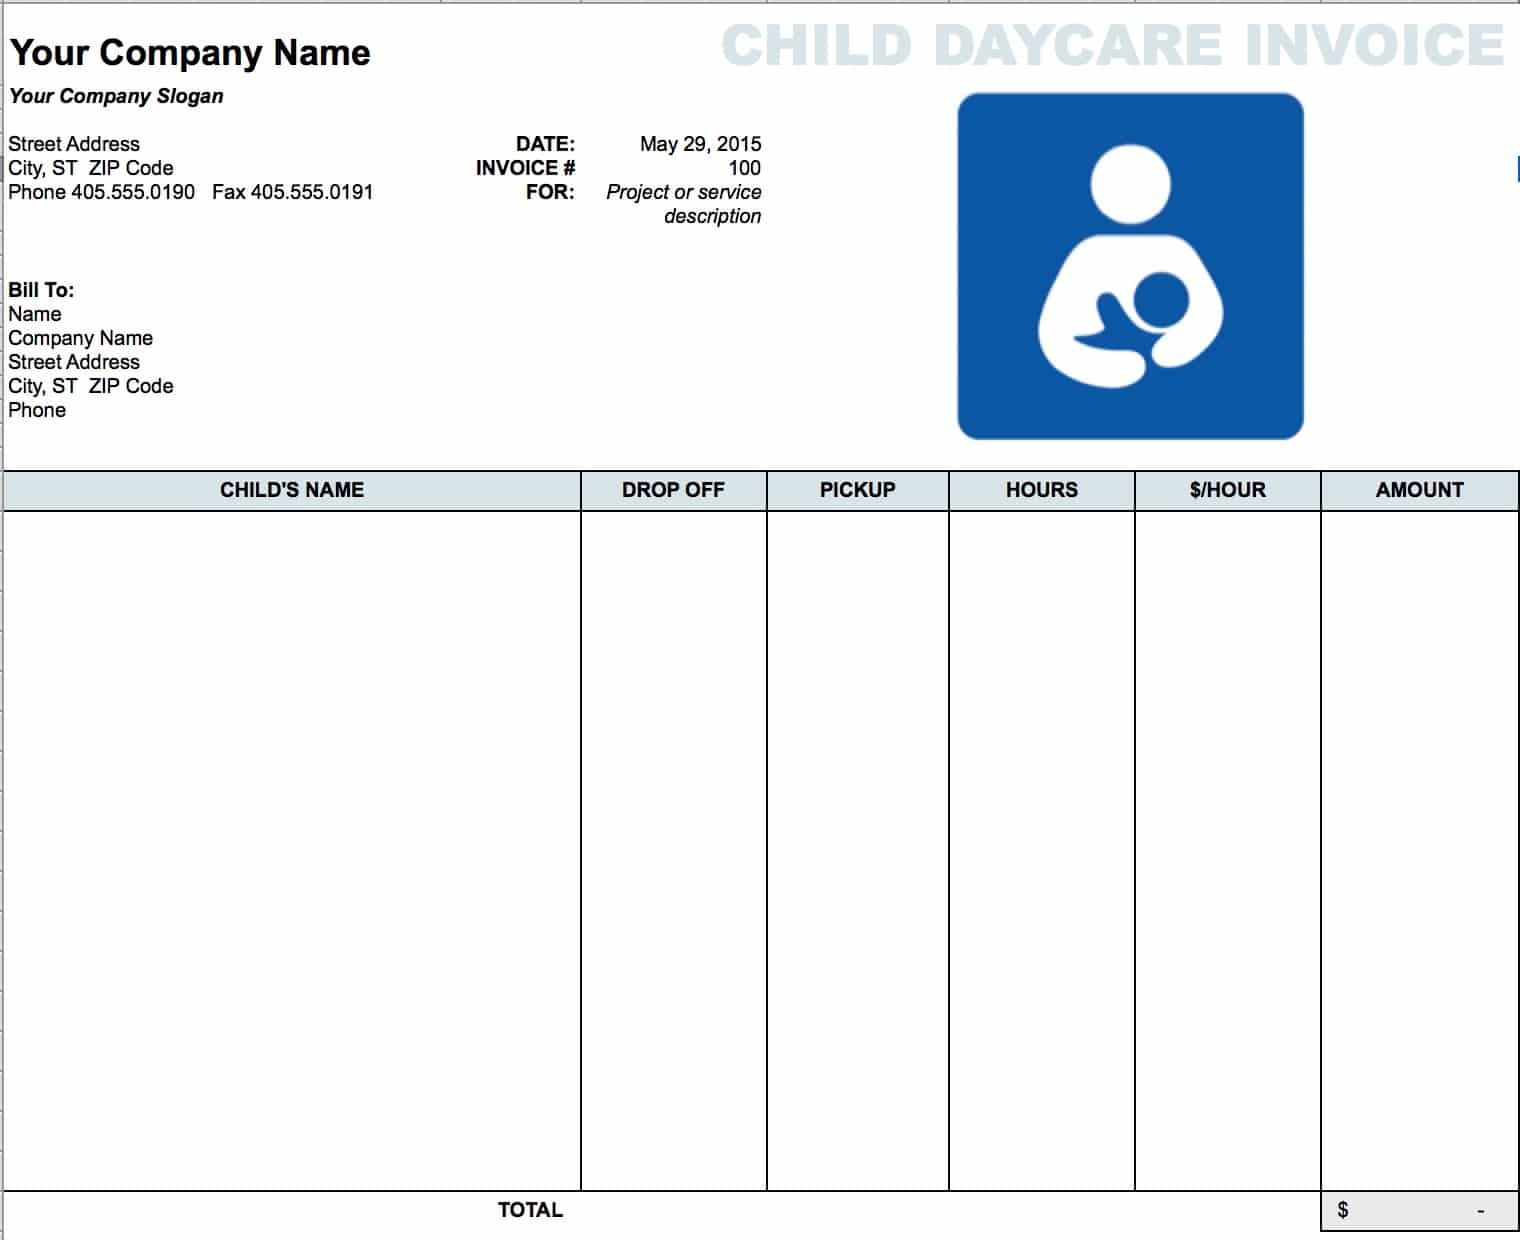 Free Daycare Child Invoice Template Excel PDF Word Doc - Invoices in word for service business